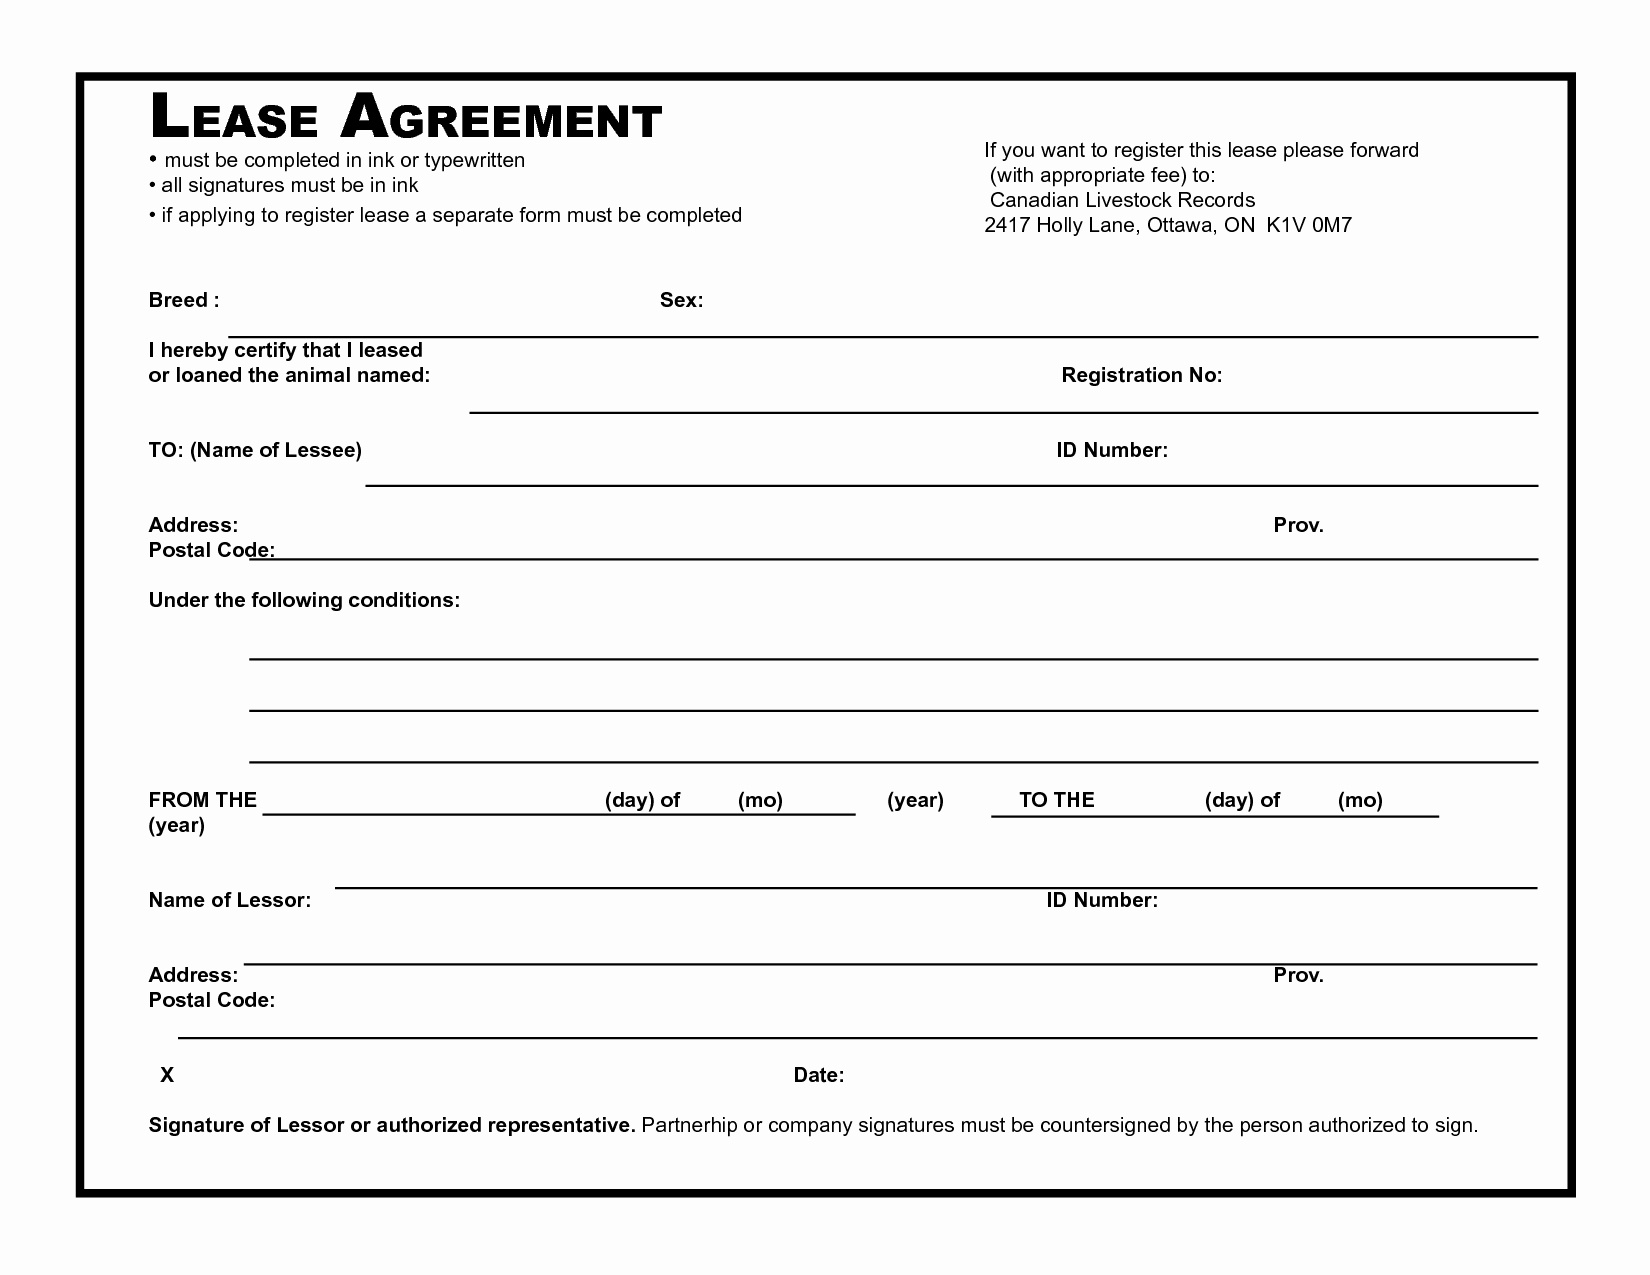 Equipment Rental Agreement Template Free Unique 39 Excellent Rental Lease and Agreement Template Examples